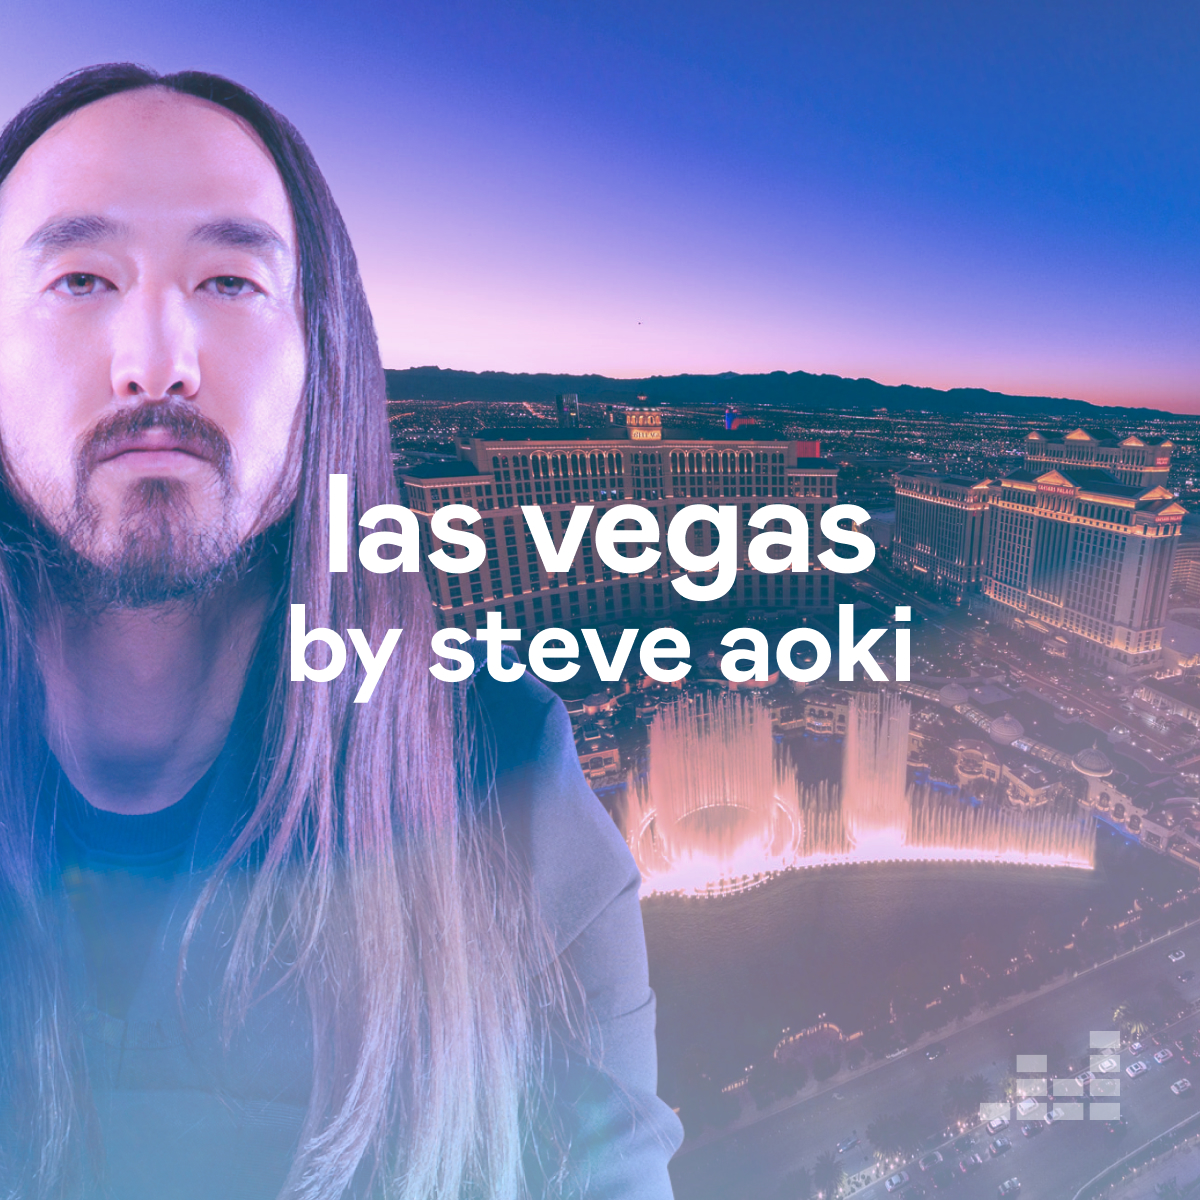 missing Las Vegas? i made a special mix about my home city. Check it out on @Deezer !! 👇👇👇 deezer.lnk.to/LasVegasbyStev…